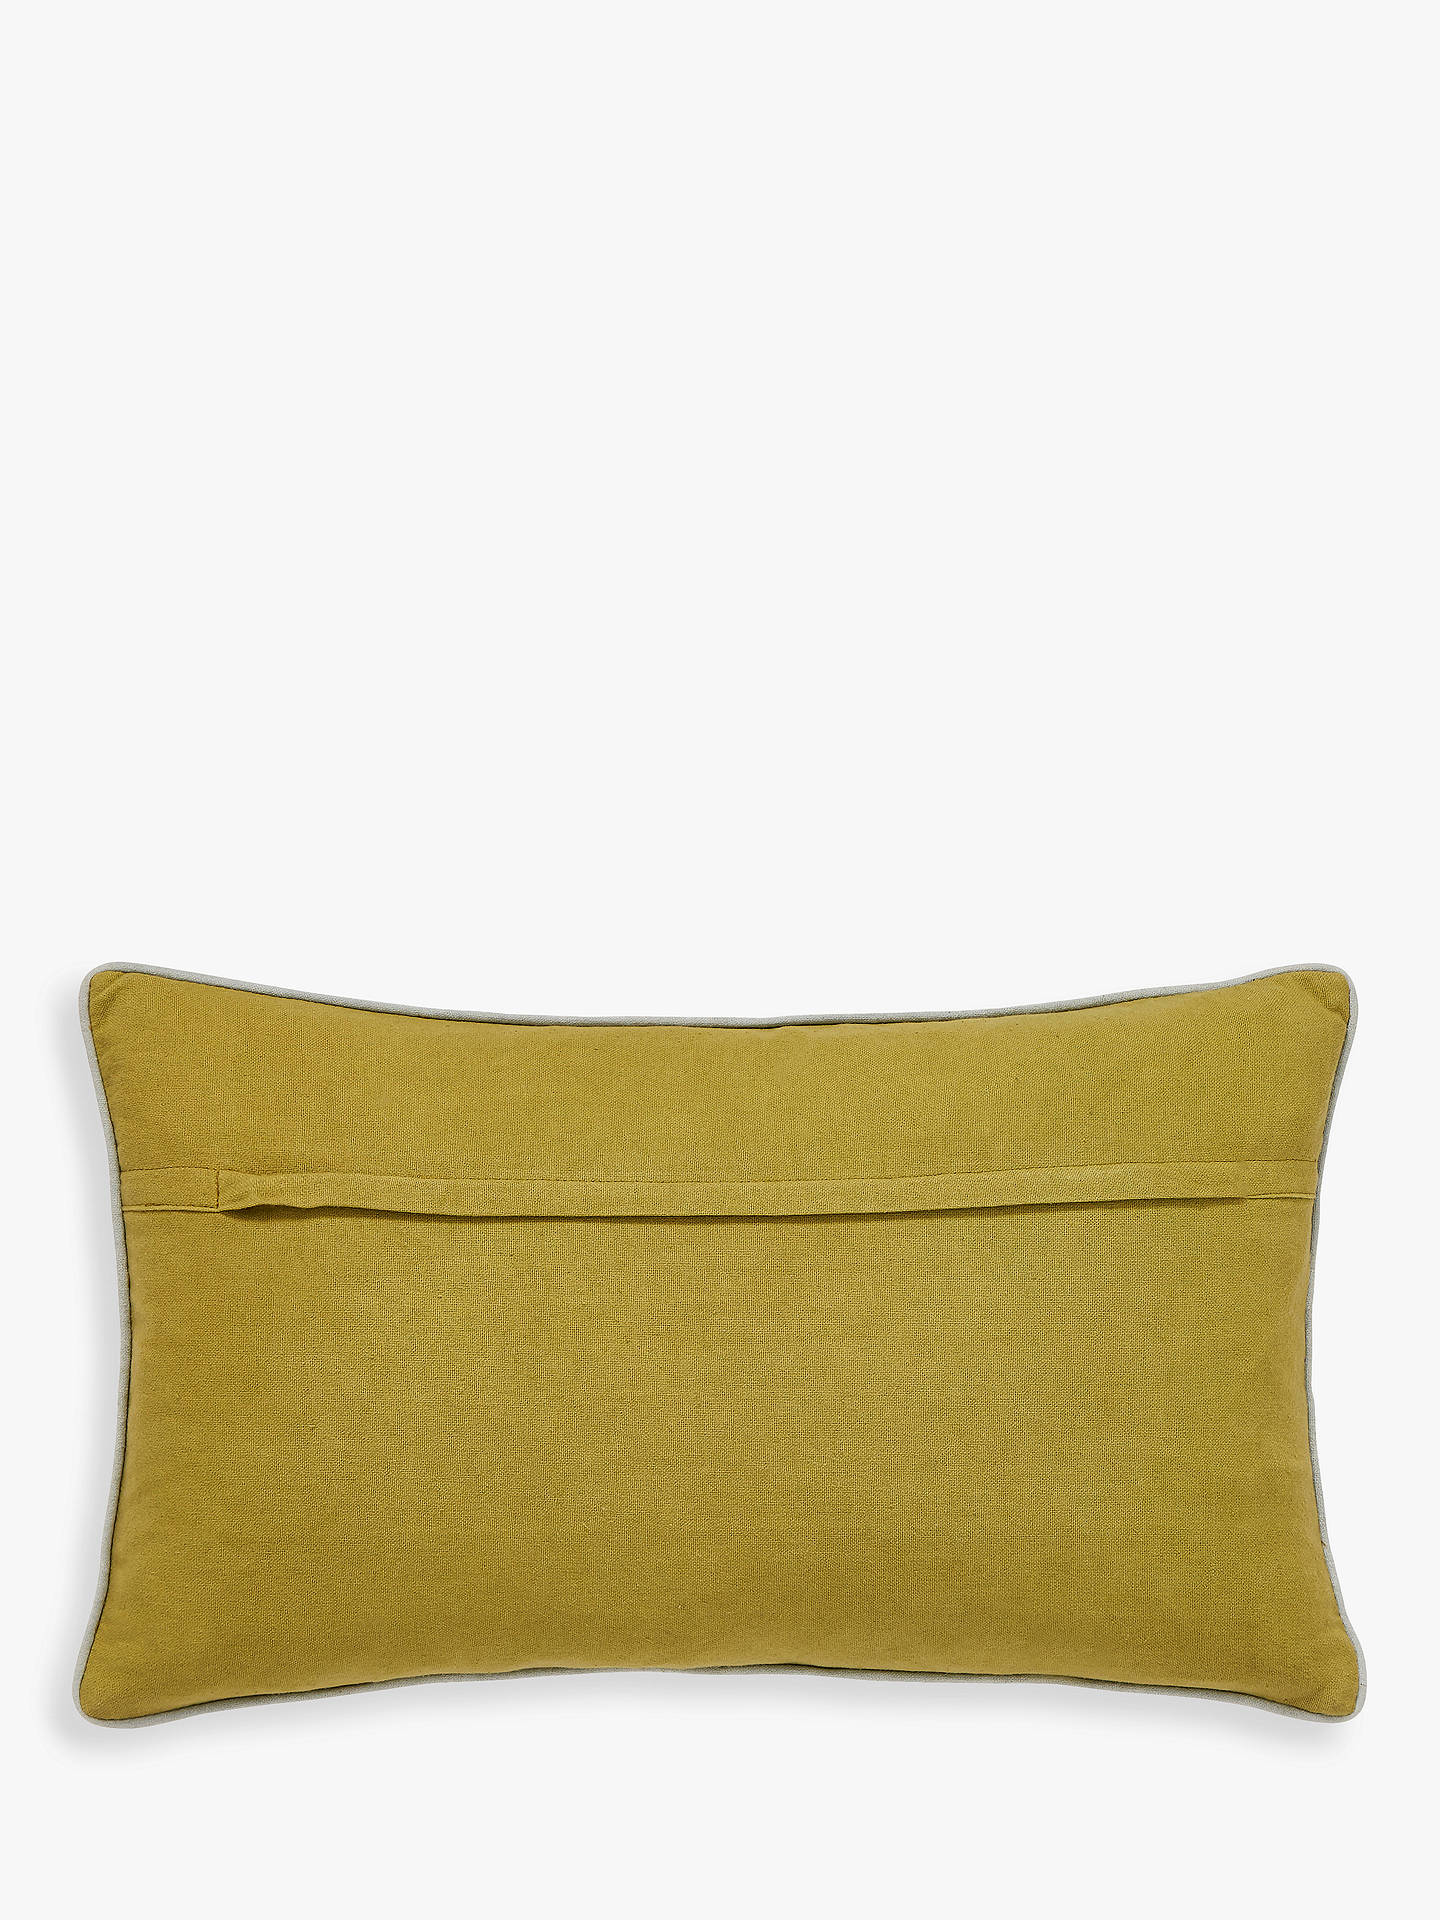 Buy Scion Pajaro Cushion, Grey / Saffron Online at johnlewis.com